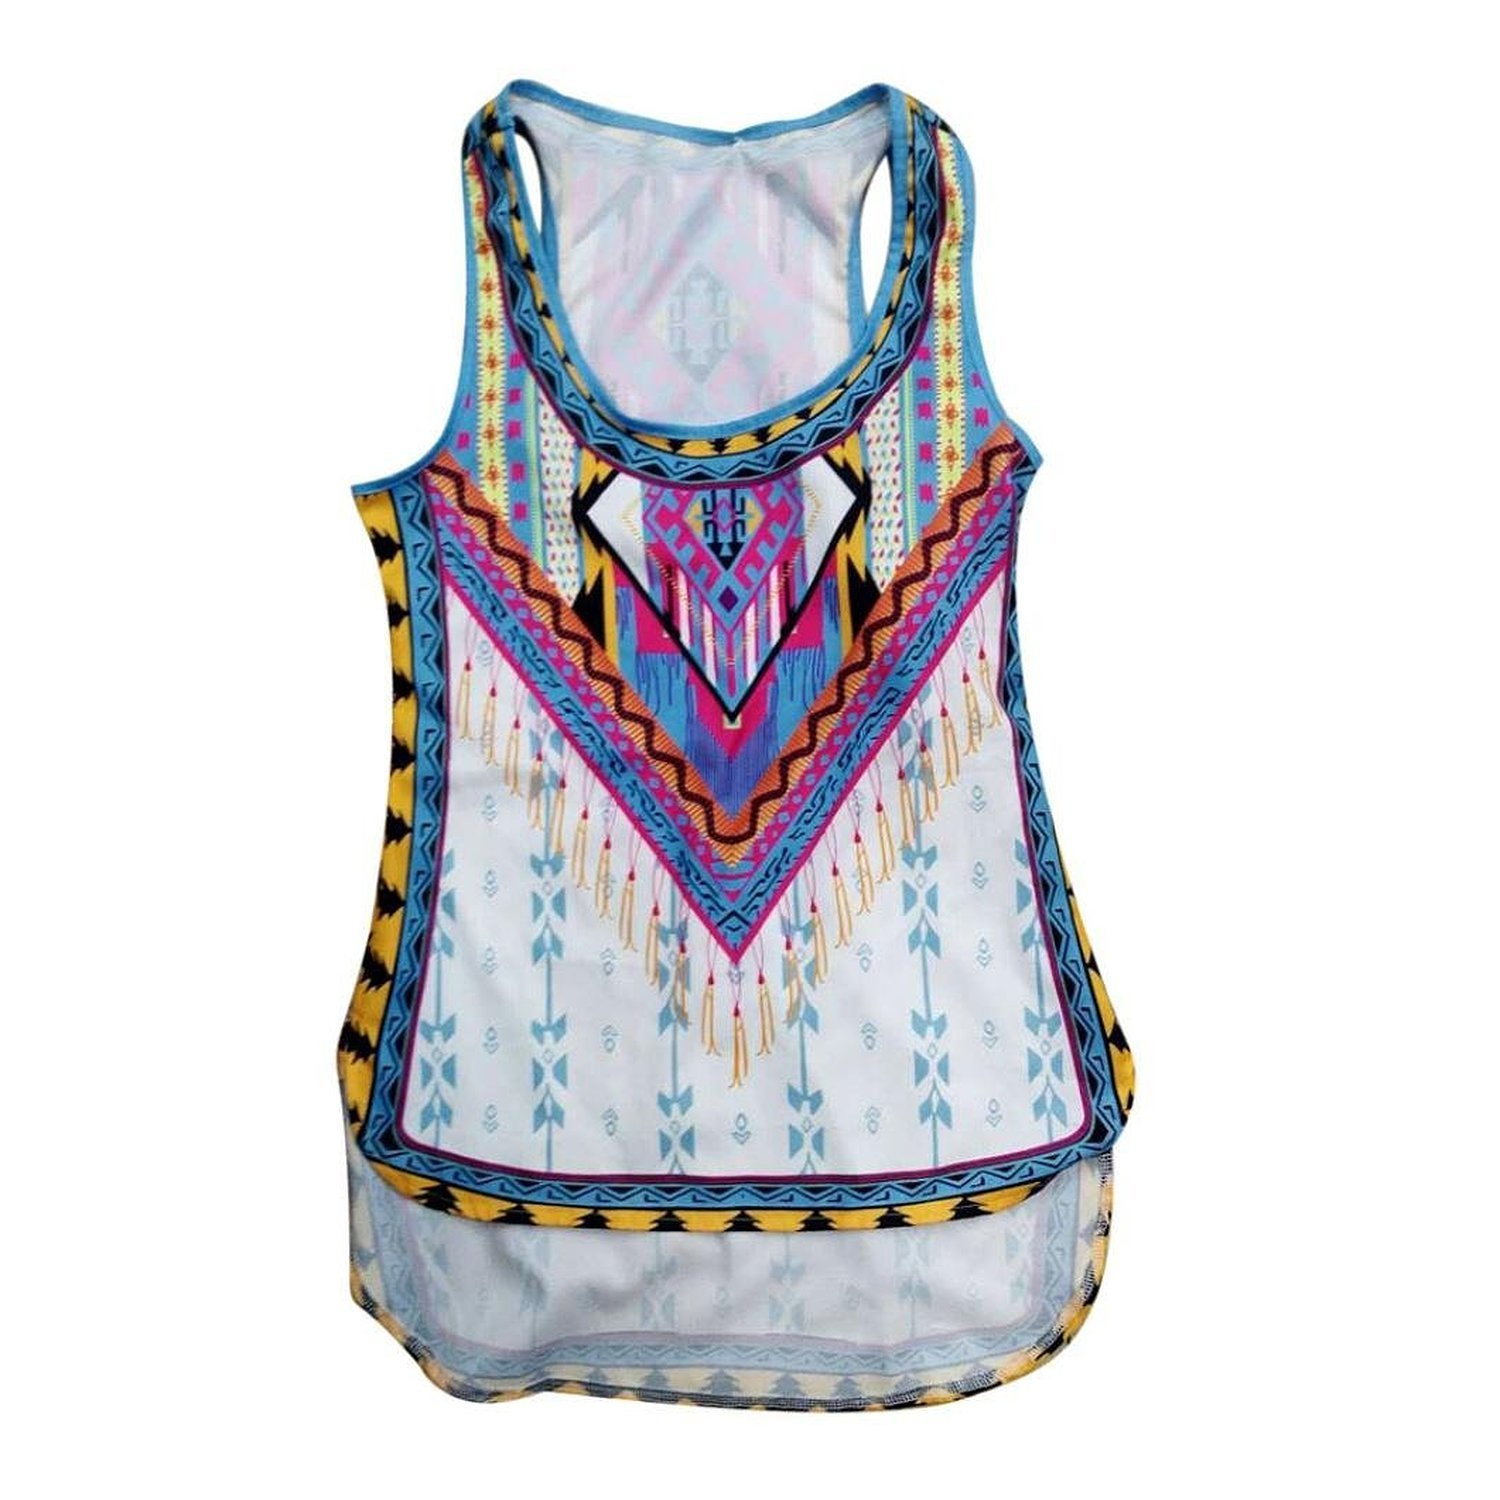 Mosunx(TM) Women New Summer Vest Top Sleeveless Blouse Casual Tank Tops T-Shirt at Amazon Womens Clothing store: